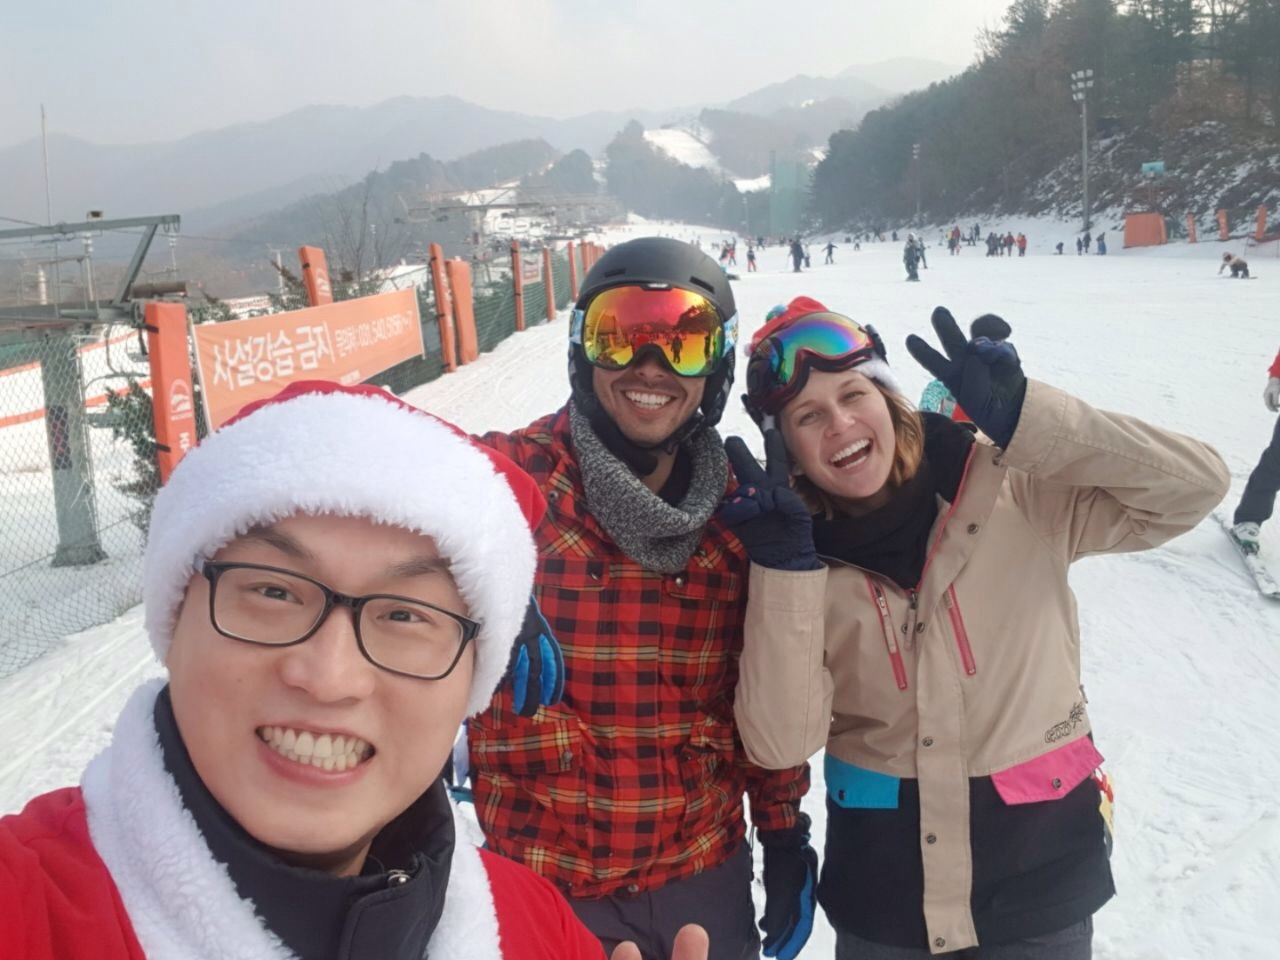 Three smiling friends snowboarding on Christmas in South Korea